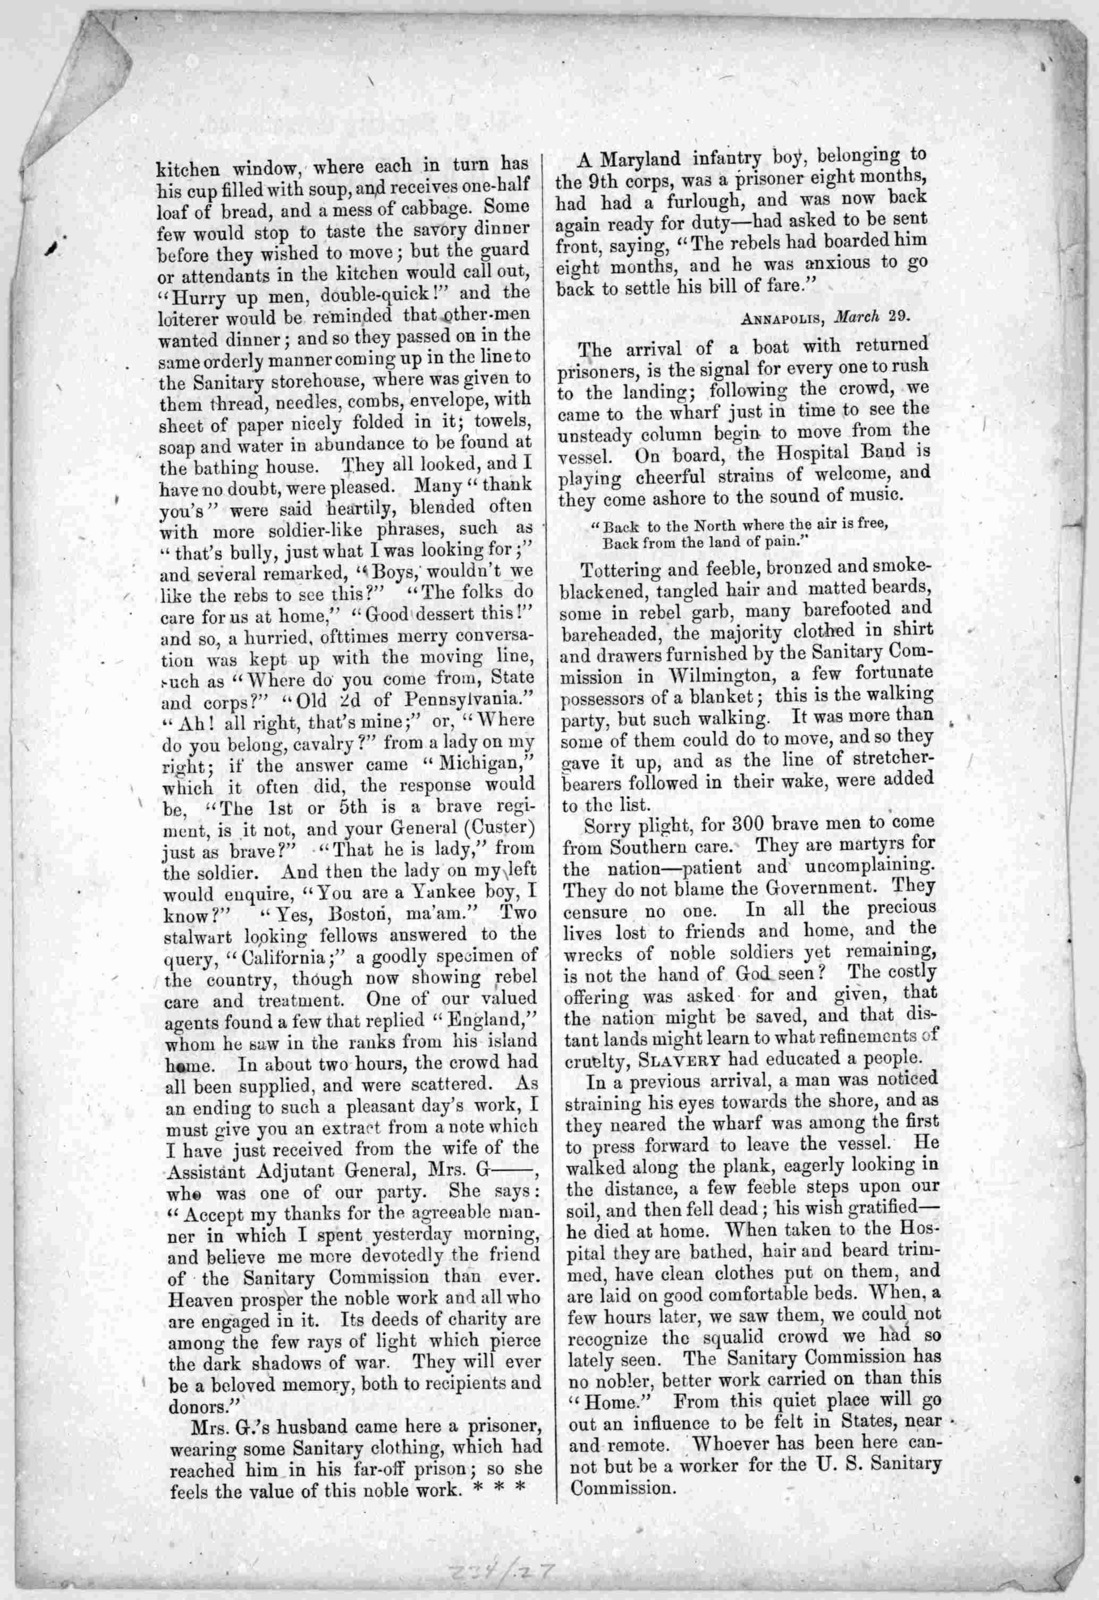 A week in Annapolis. Extracts from the journal of Mrs. H----, visiting the prisoners. [1863?].